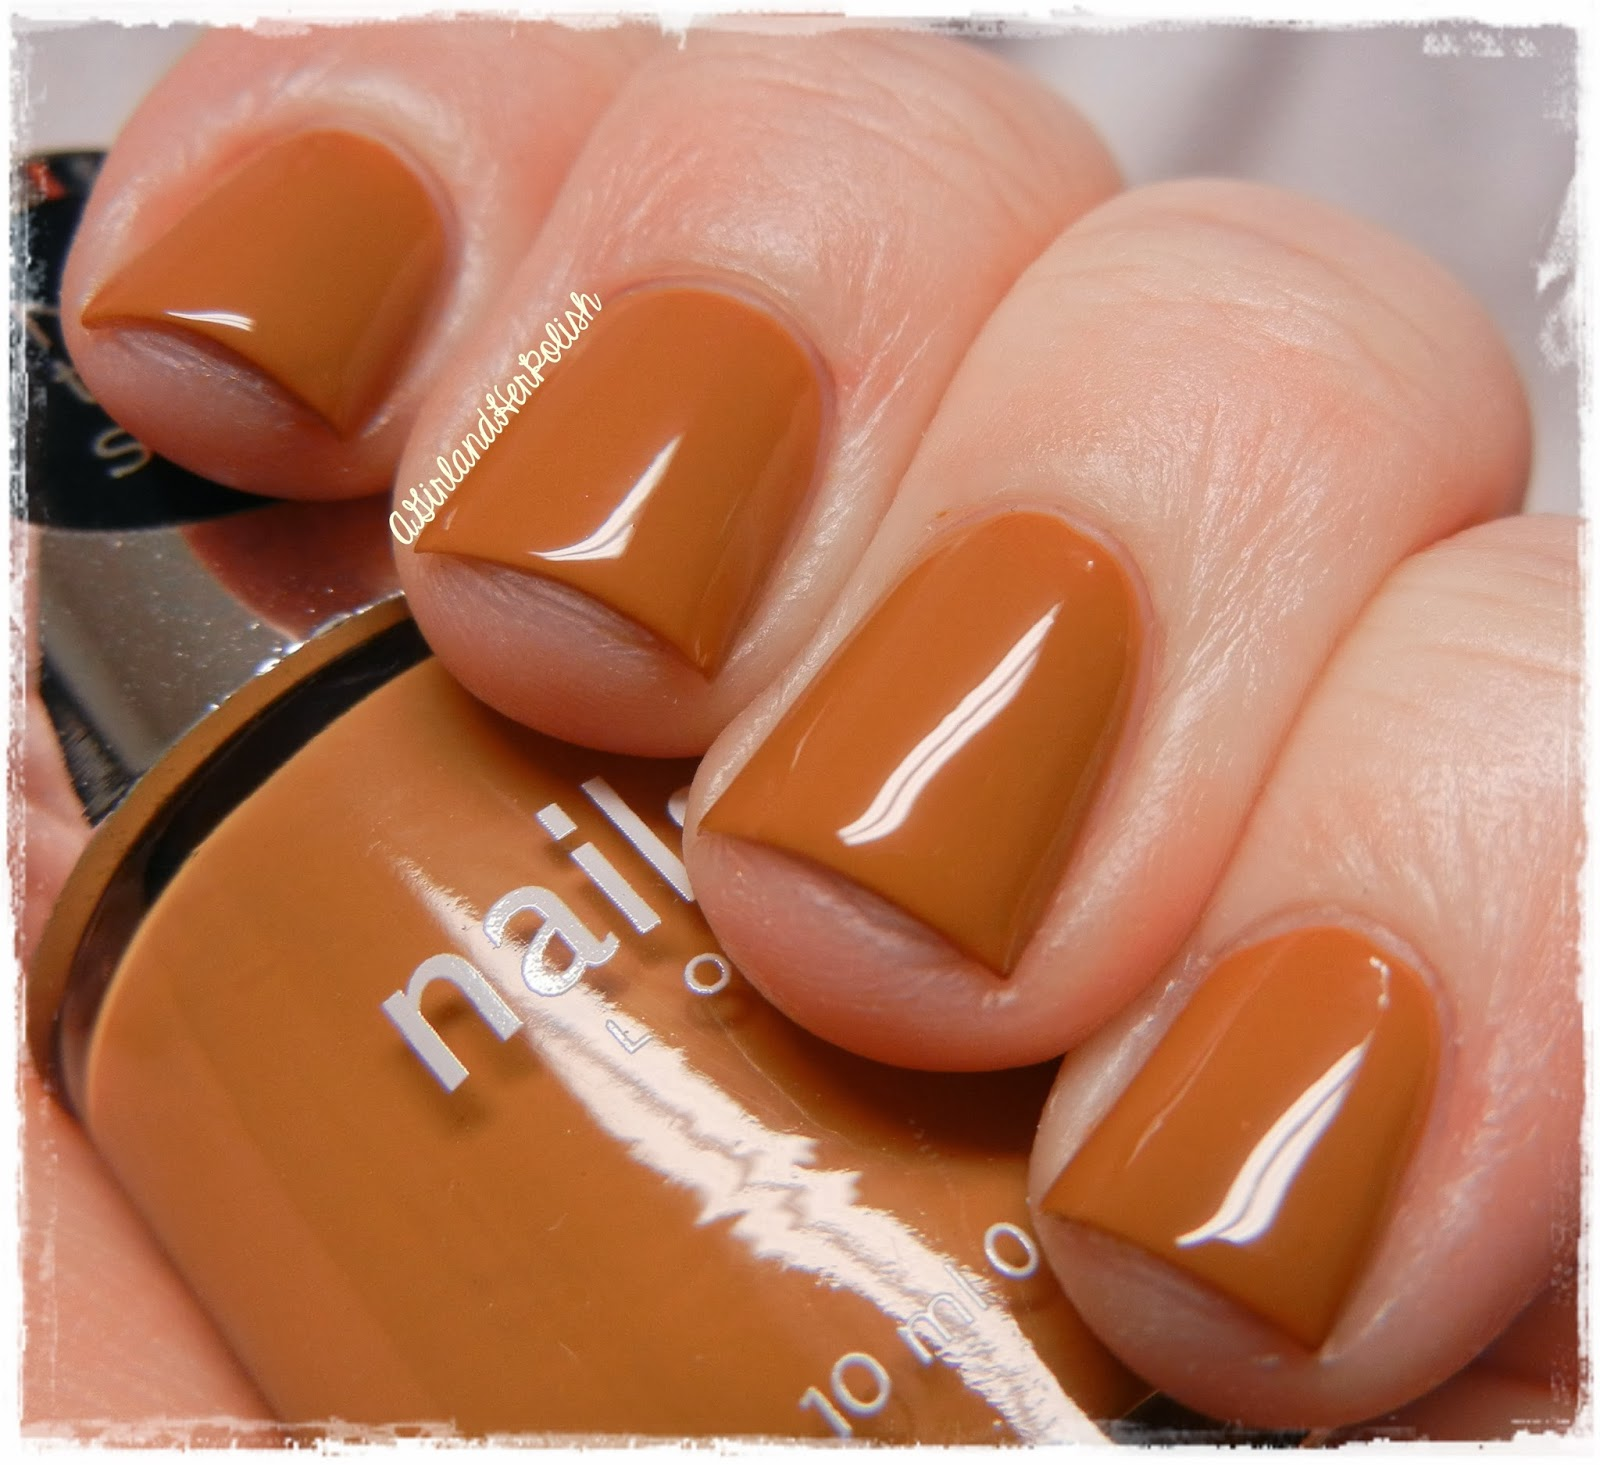 I Absolutely Love This Ugly Color It Is One Of The Best Nail Polish Shades Have Ever Seen